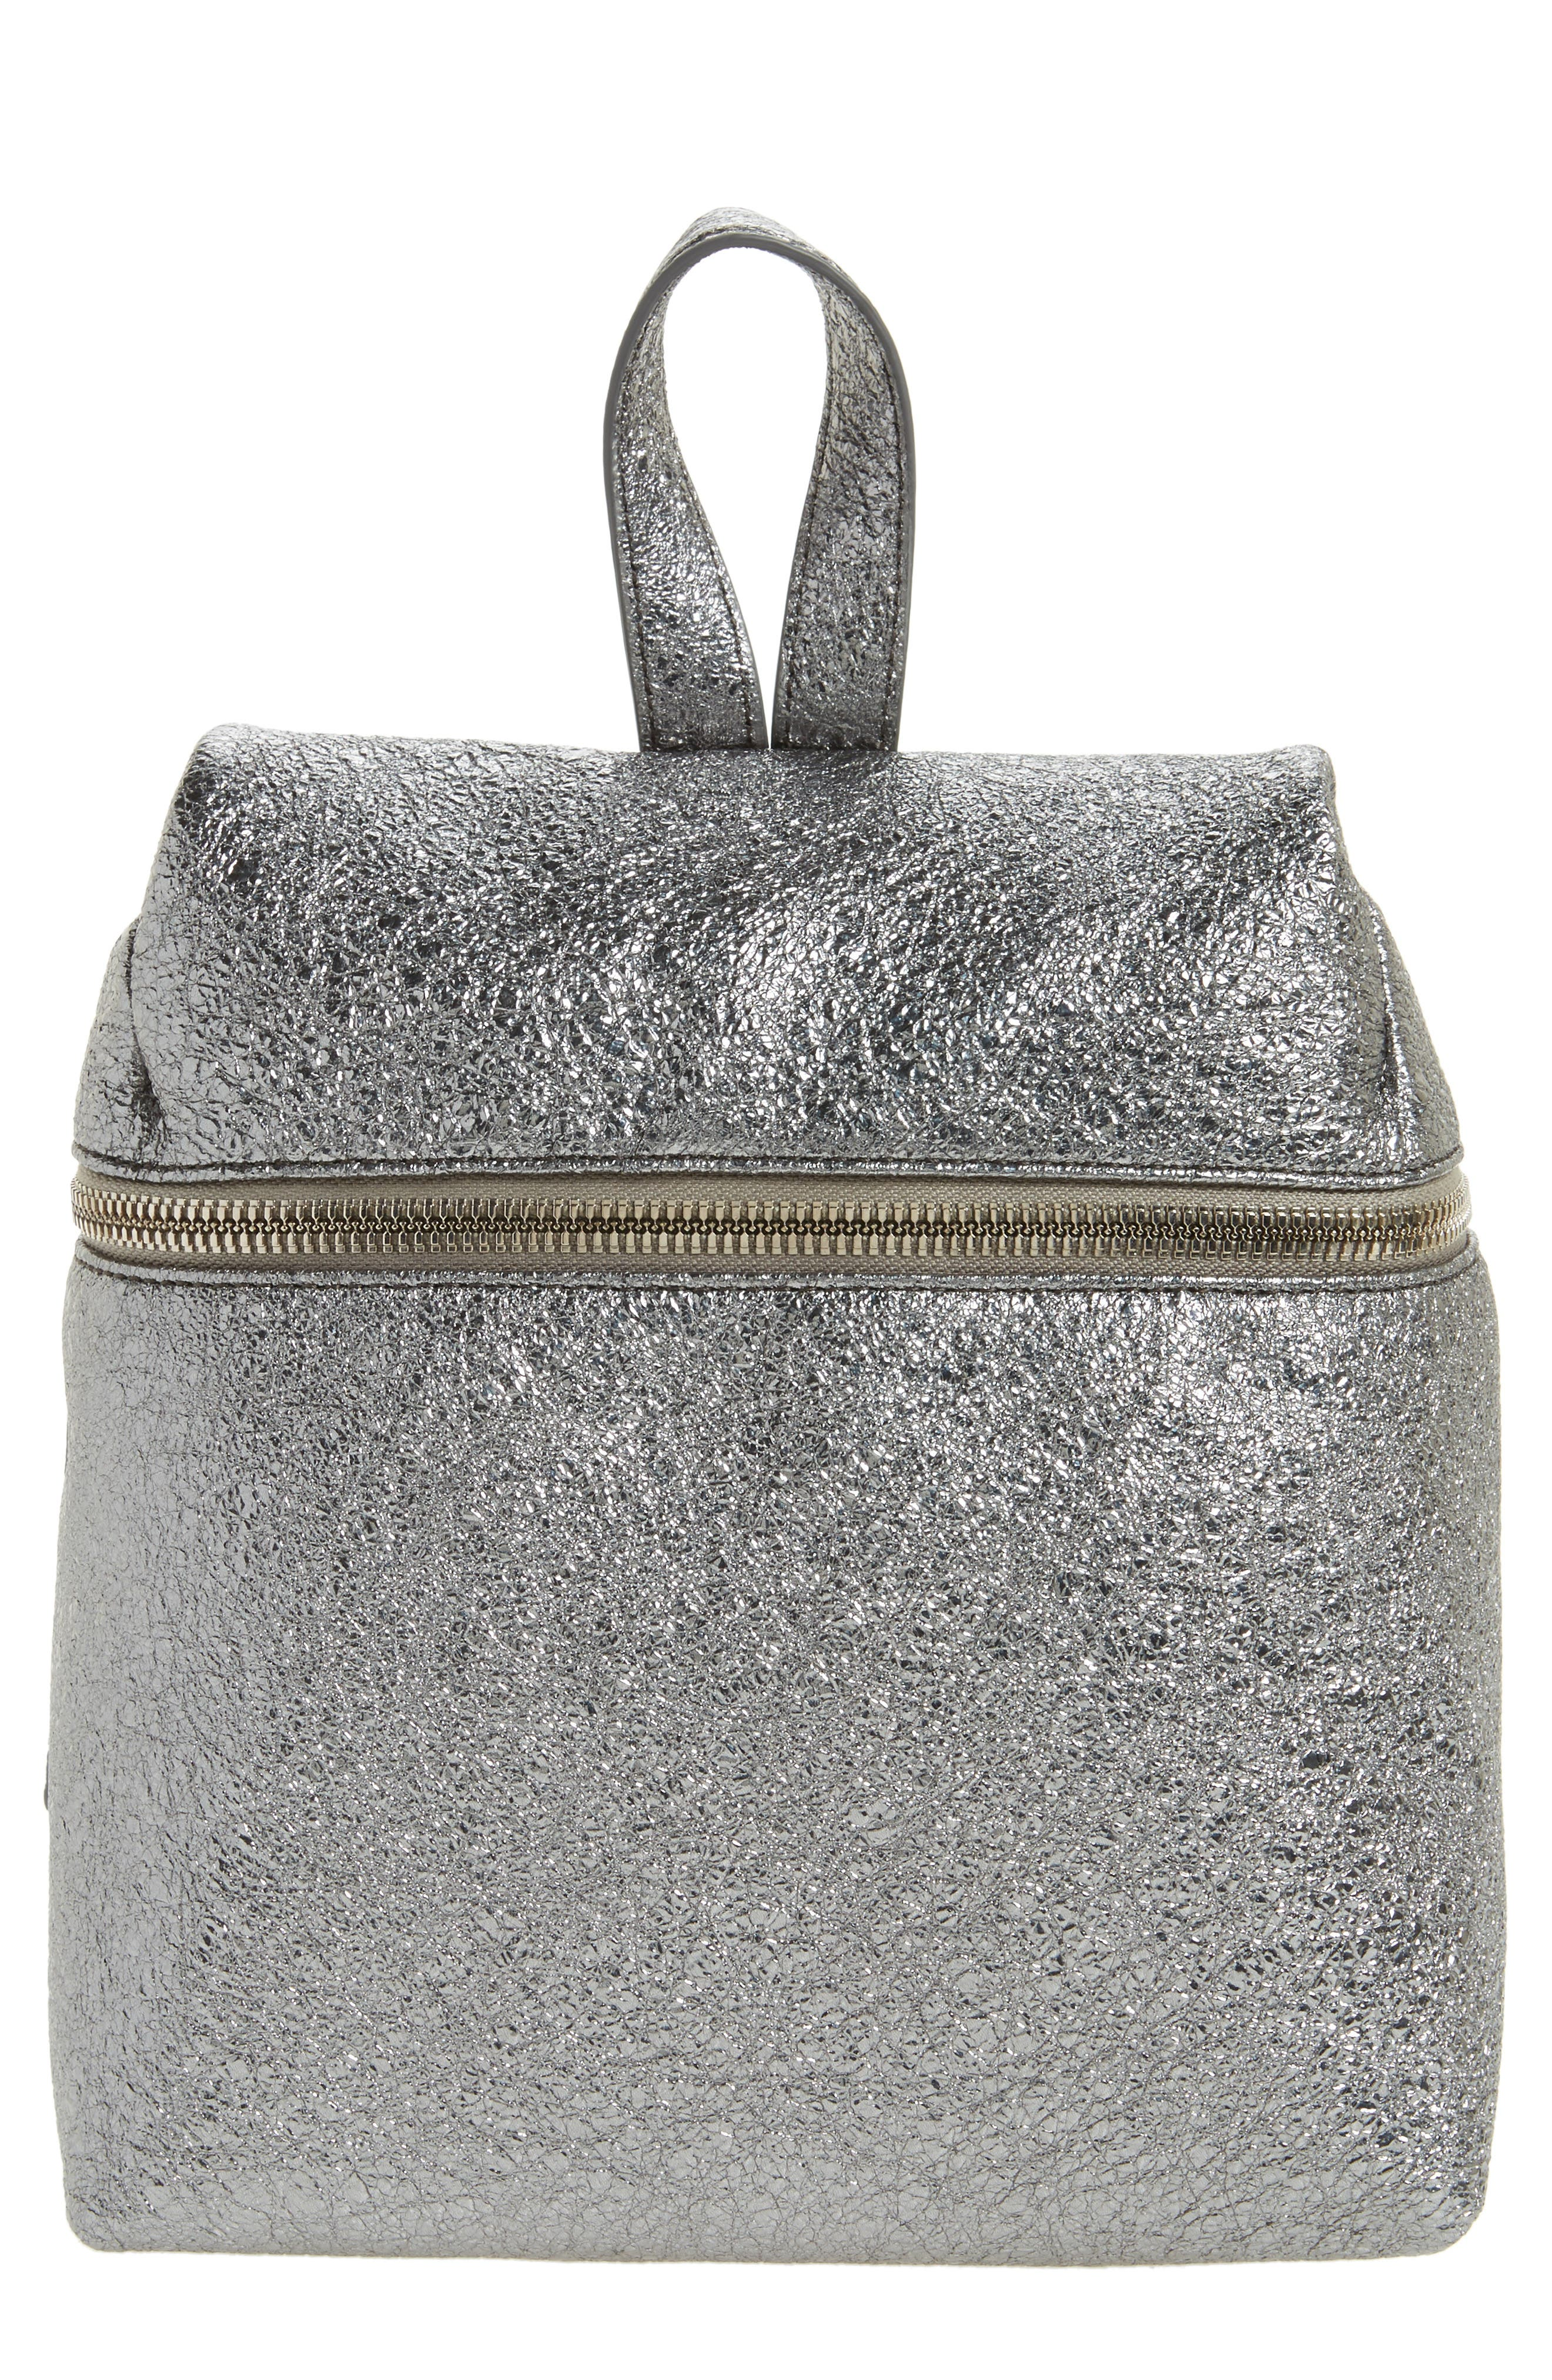 Small Crinkled Metallic Leather Backpack,                             Alternate thumbnail 8, color,                             Pyrite